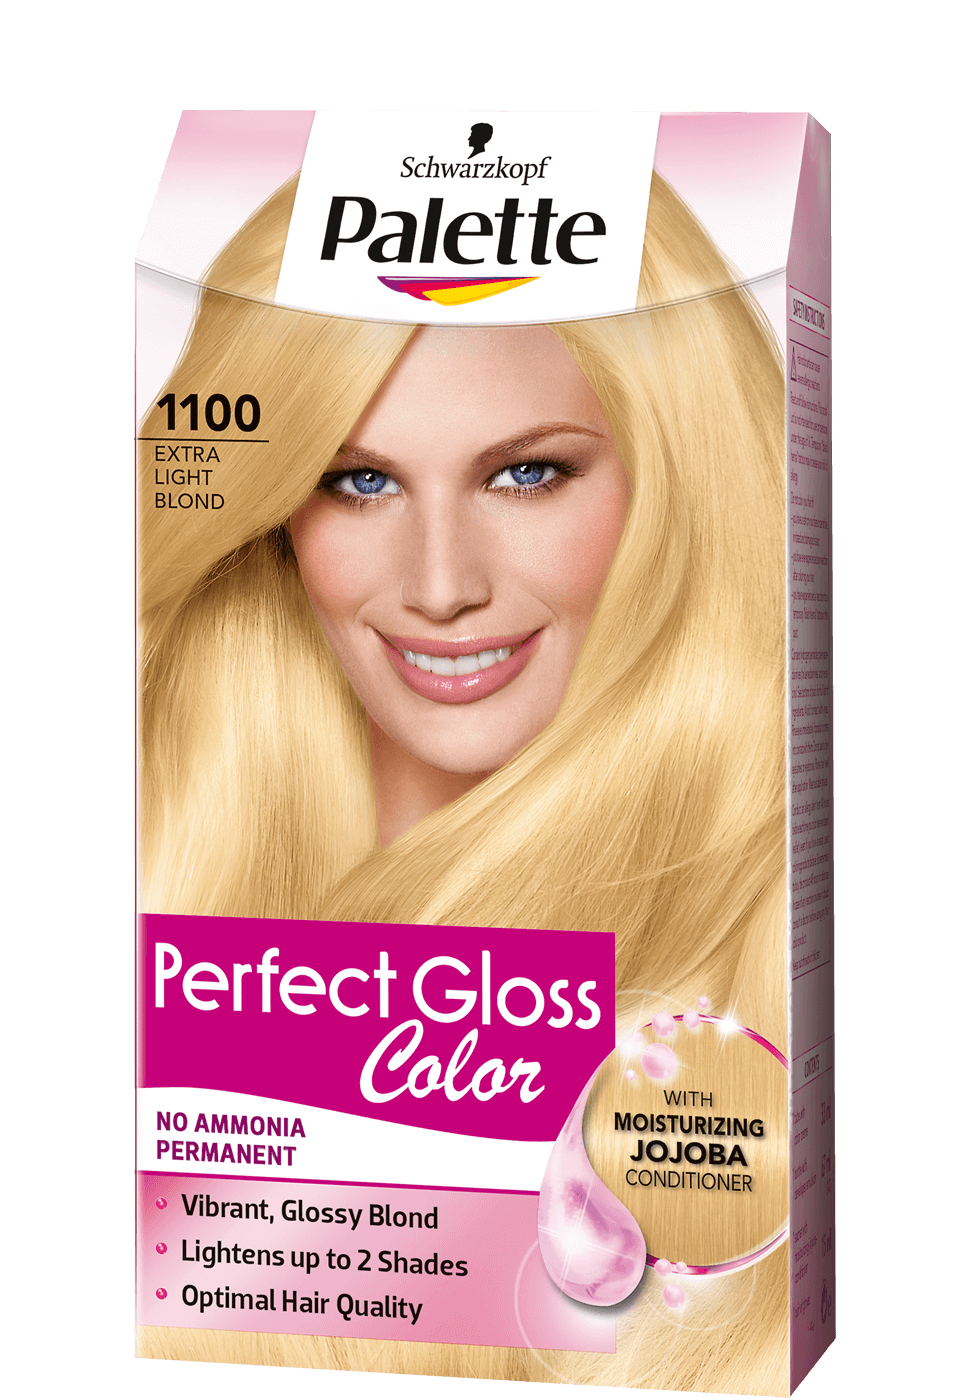 palette_com_gc_baseline_1100_extra_light_blond_970x1400